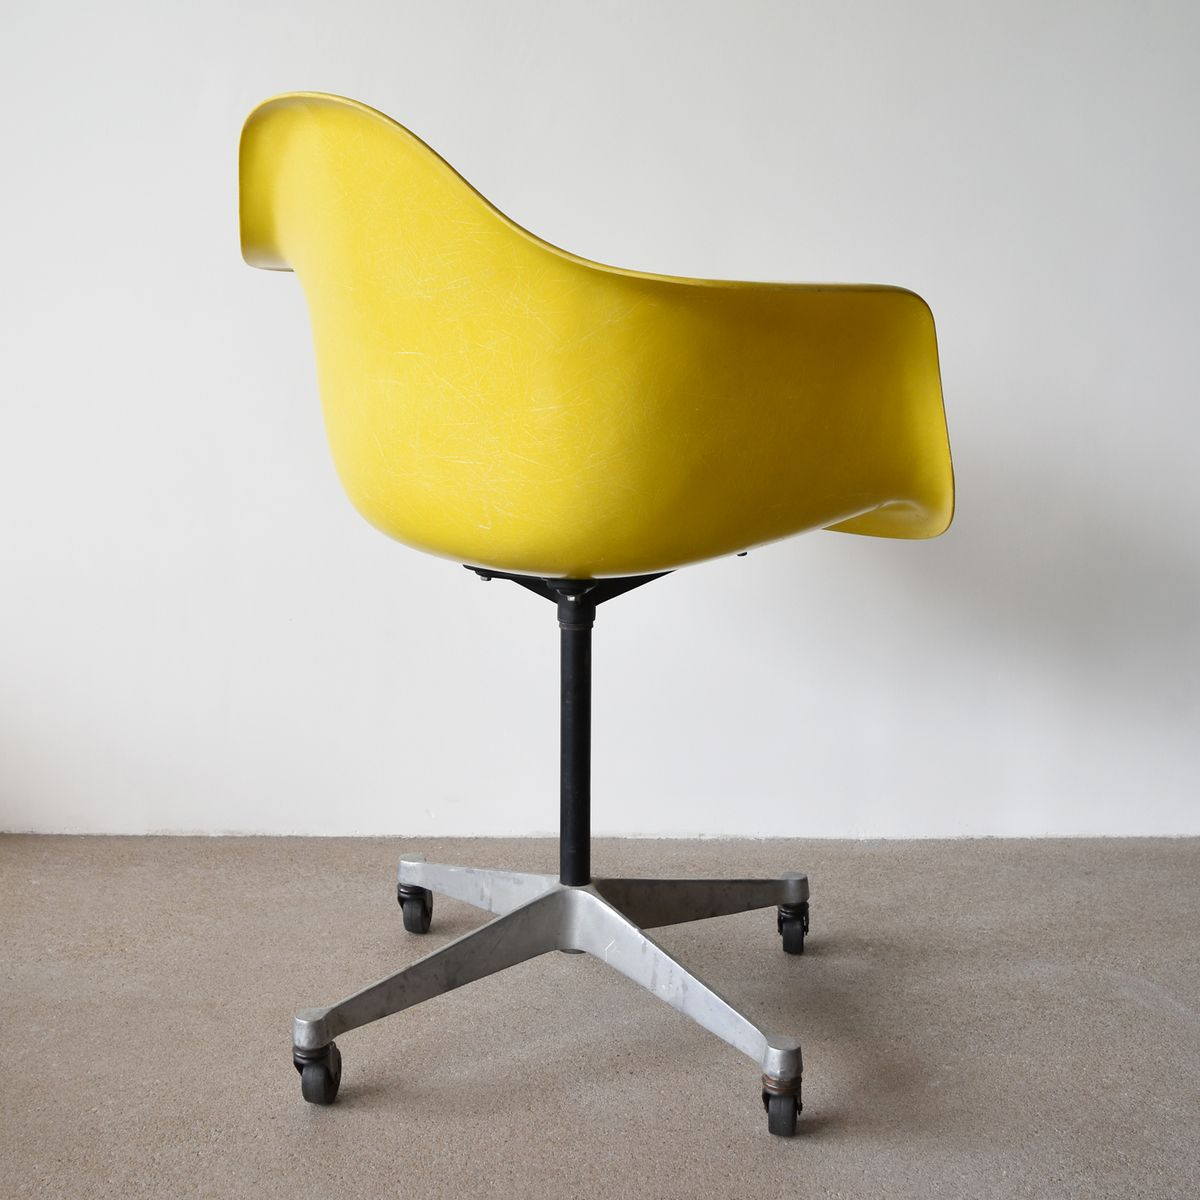 Design Chairs Eames Herman Miller Vintage Chair Canary Yellow